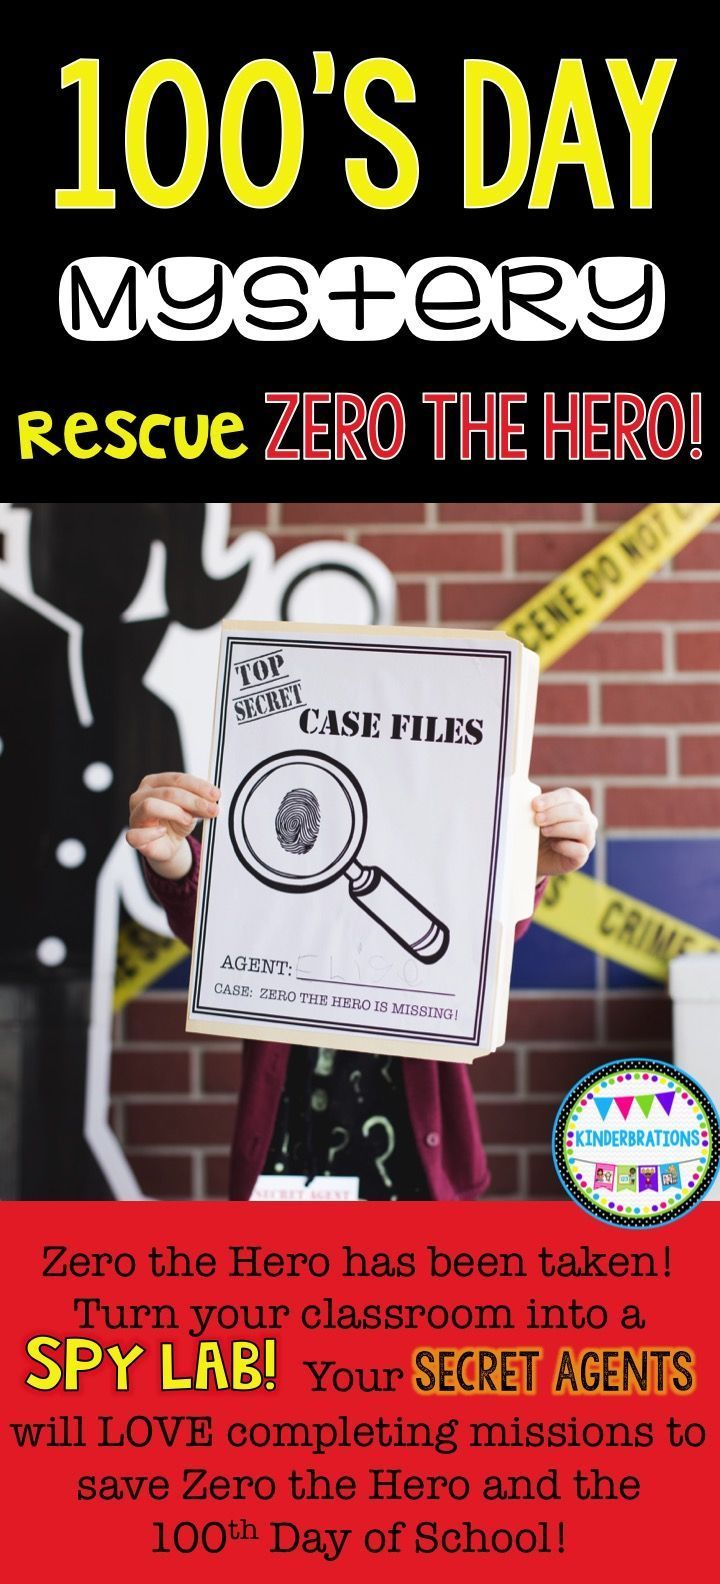 Are you looking for a unique way to celebrate 100's Day? Turn your classroom into a spy lab! Zero the Hero has been taken by Devious Agent 99 in an effort to stop the 100th day of school from happening. Your students will become secret agents as they w